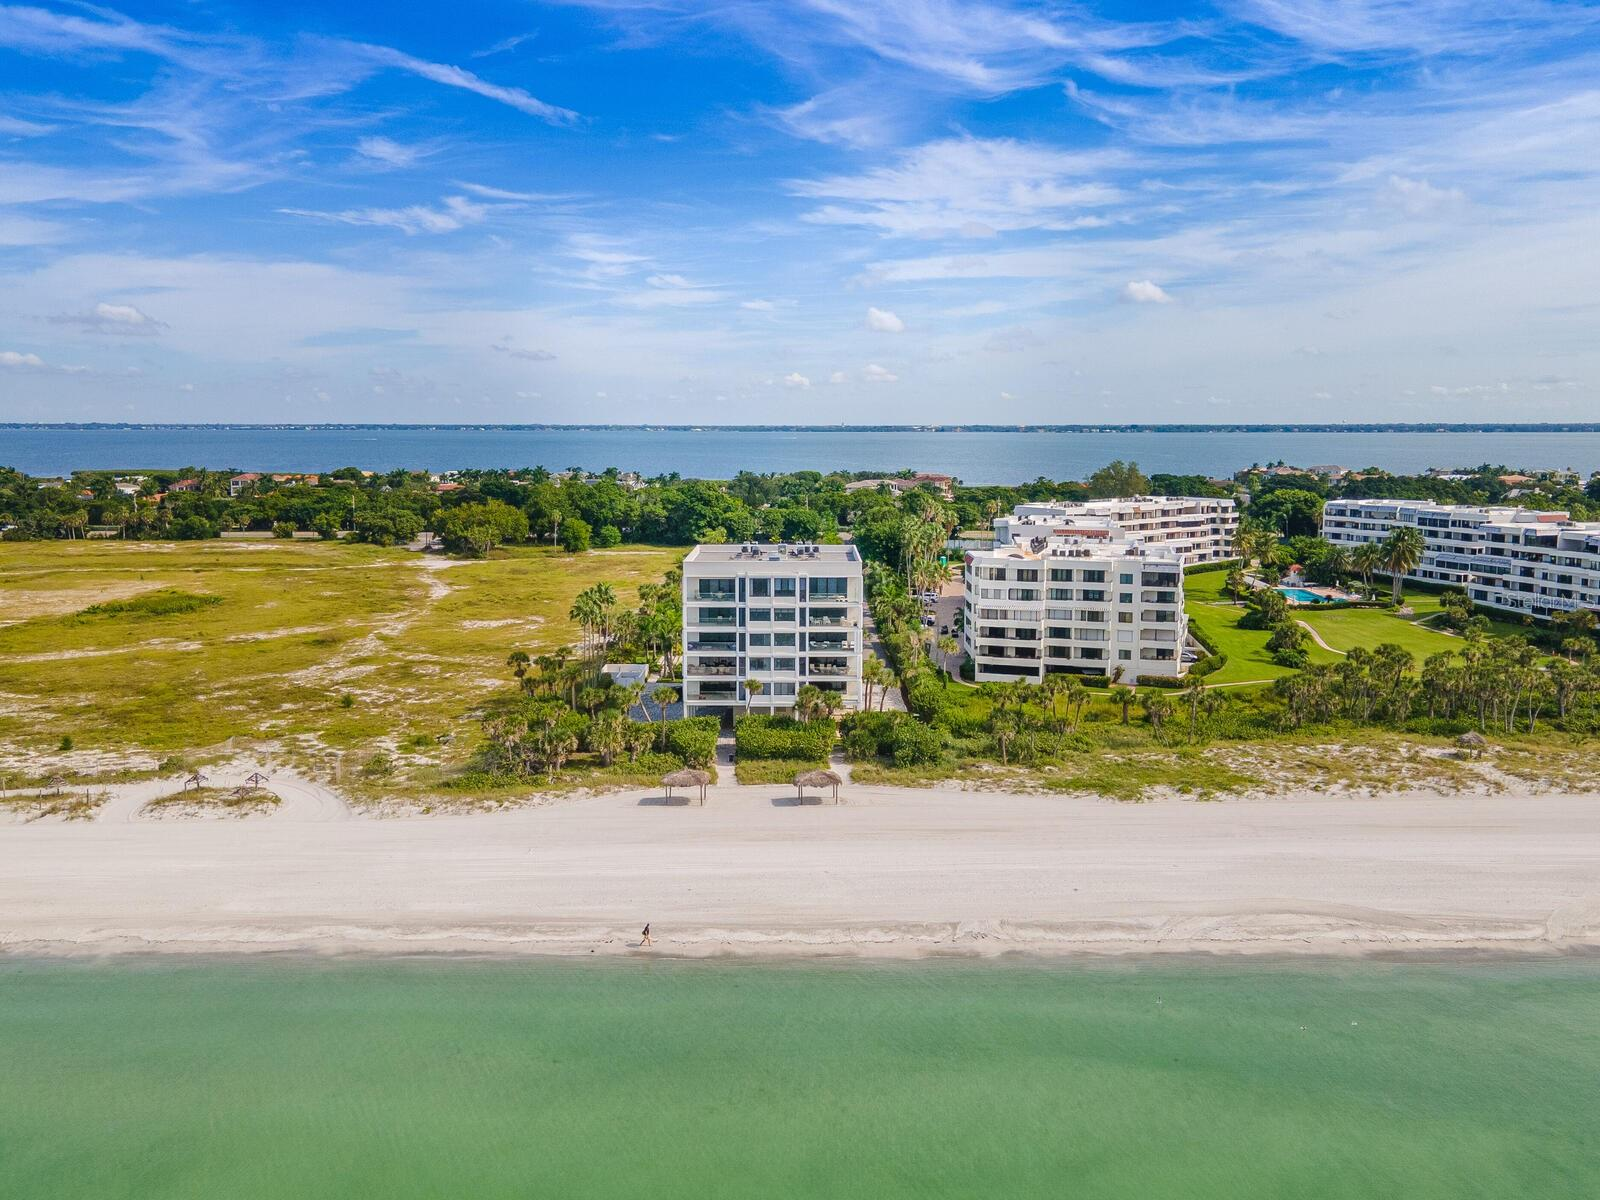 Condo for sale at 1511 Gulf Of Mexico Dr #202, Longboat Key, FL 34228 - MLS Number is A4481414